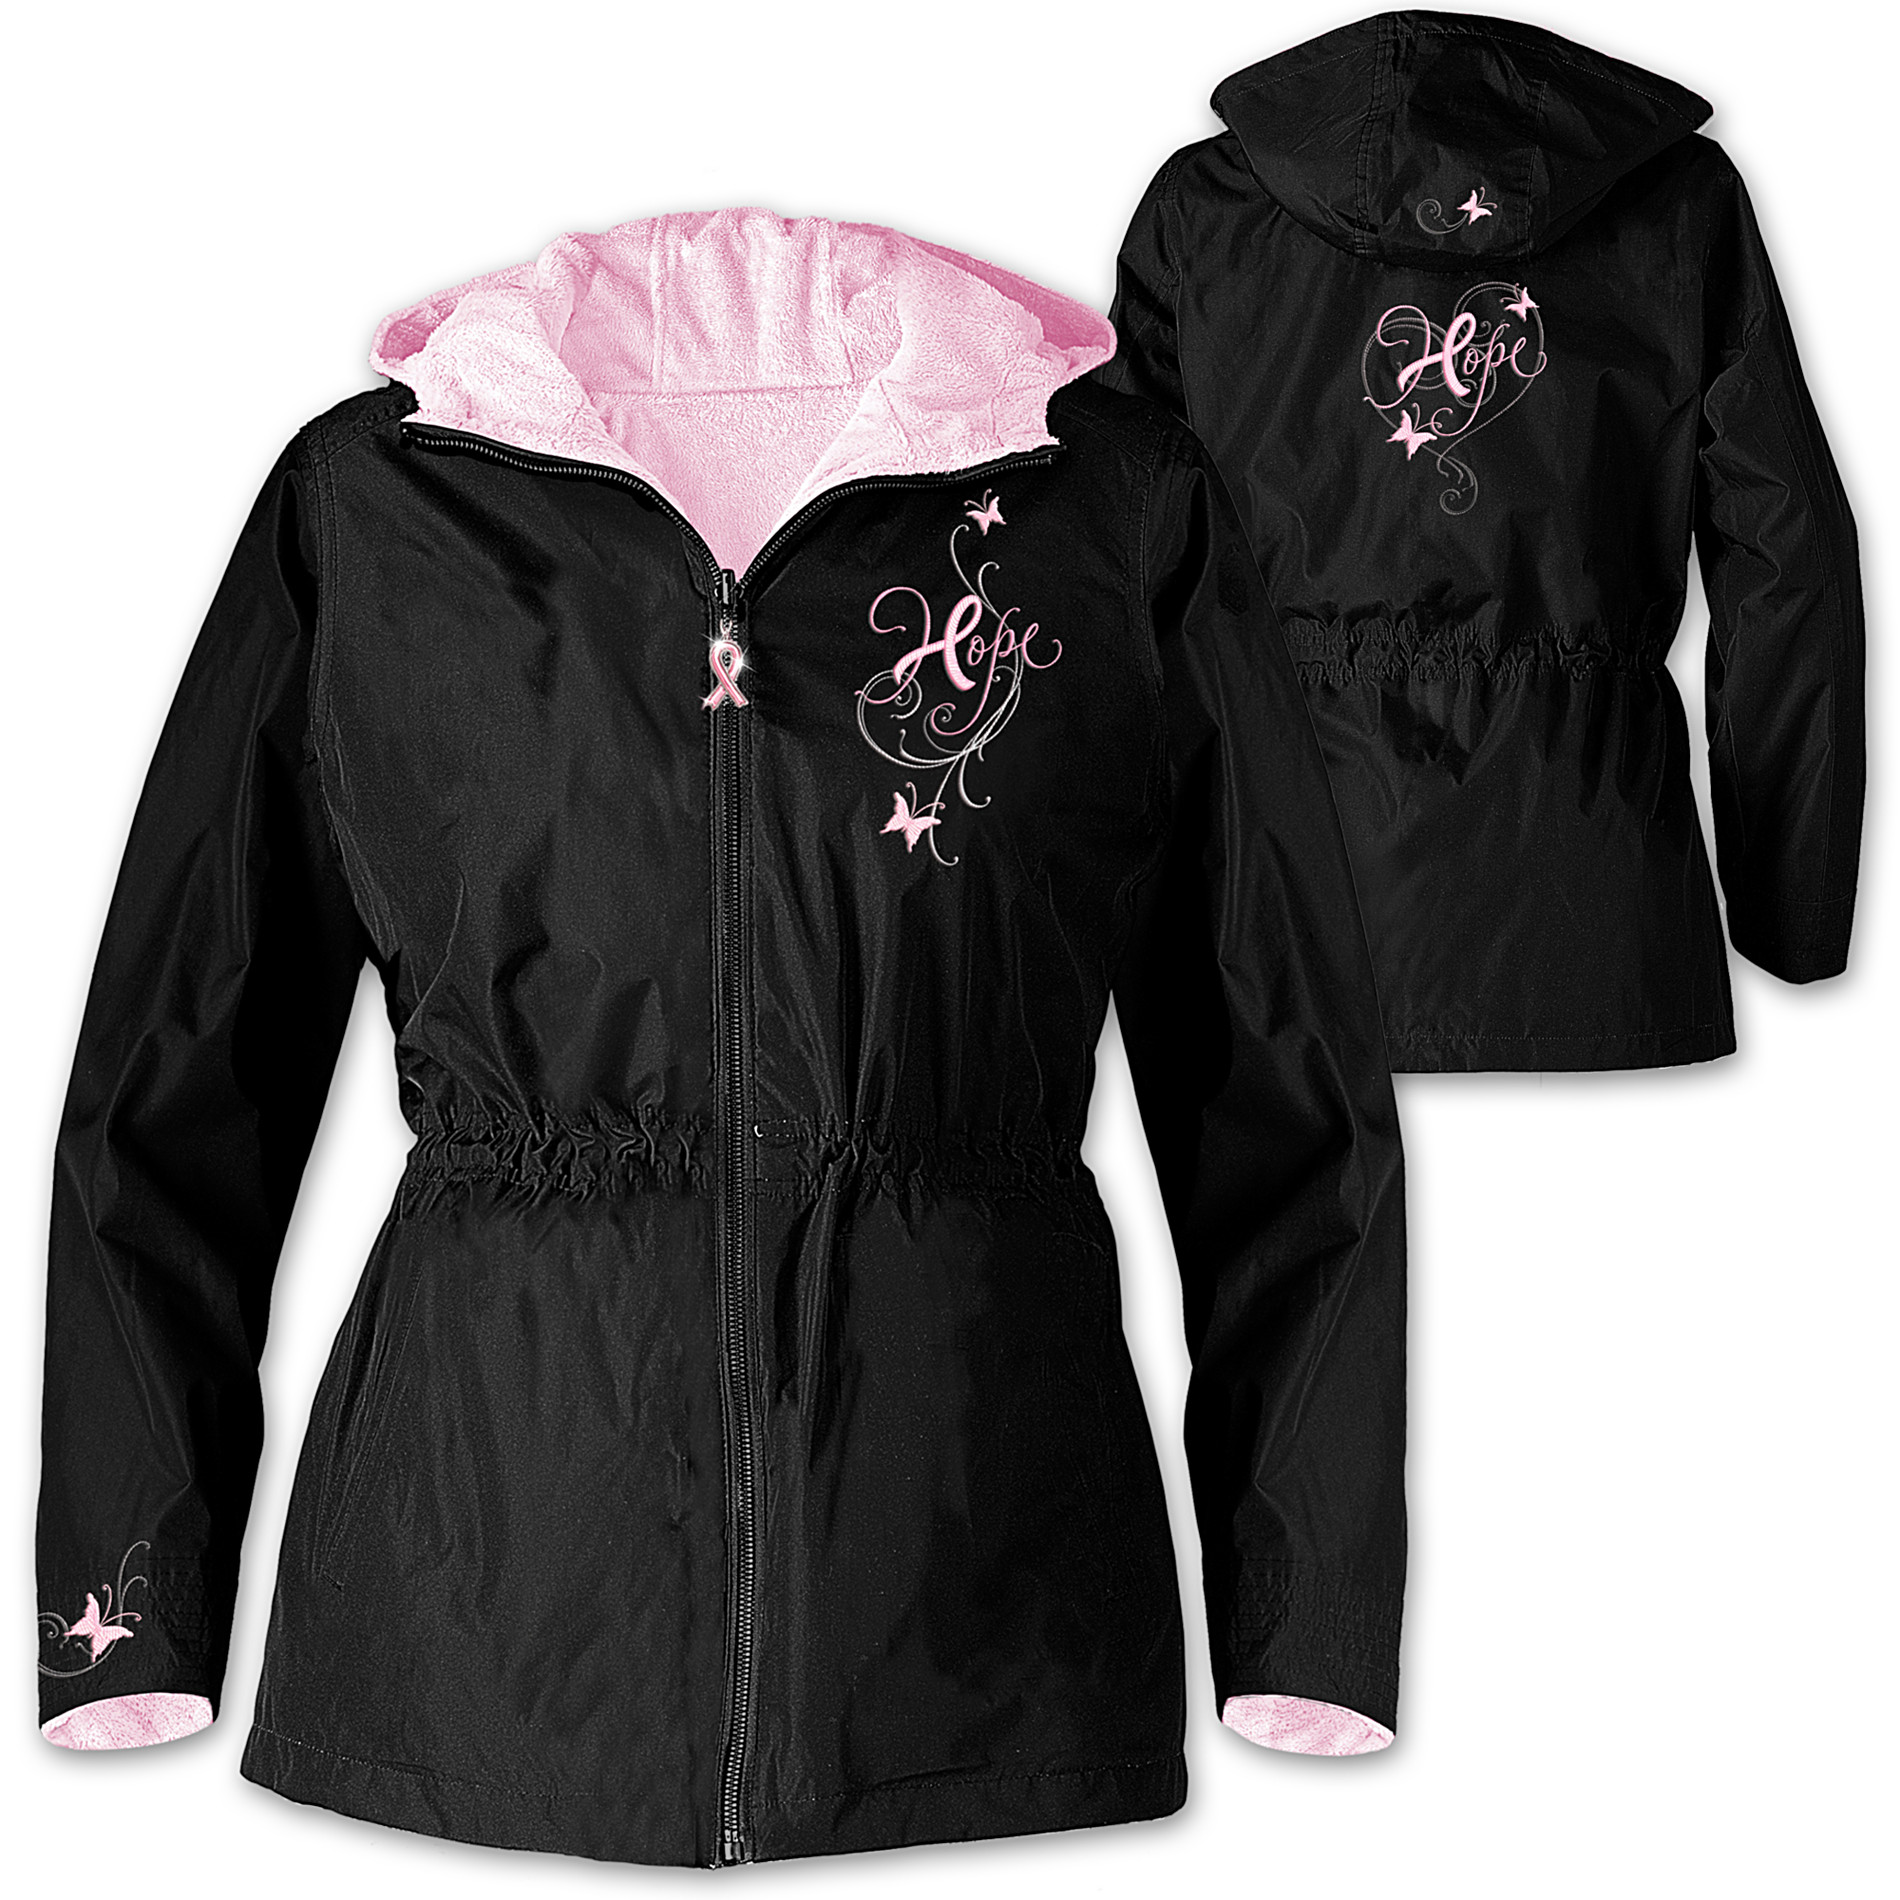 The Bradford Exchange Breast Cancer Support Women's Jacket: Ribbons Of Hope at Sears.com